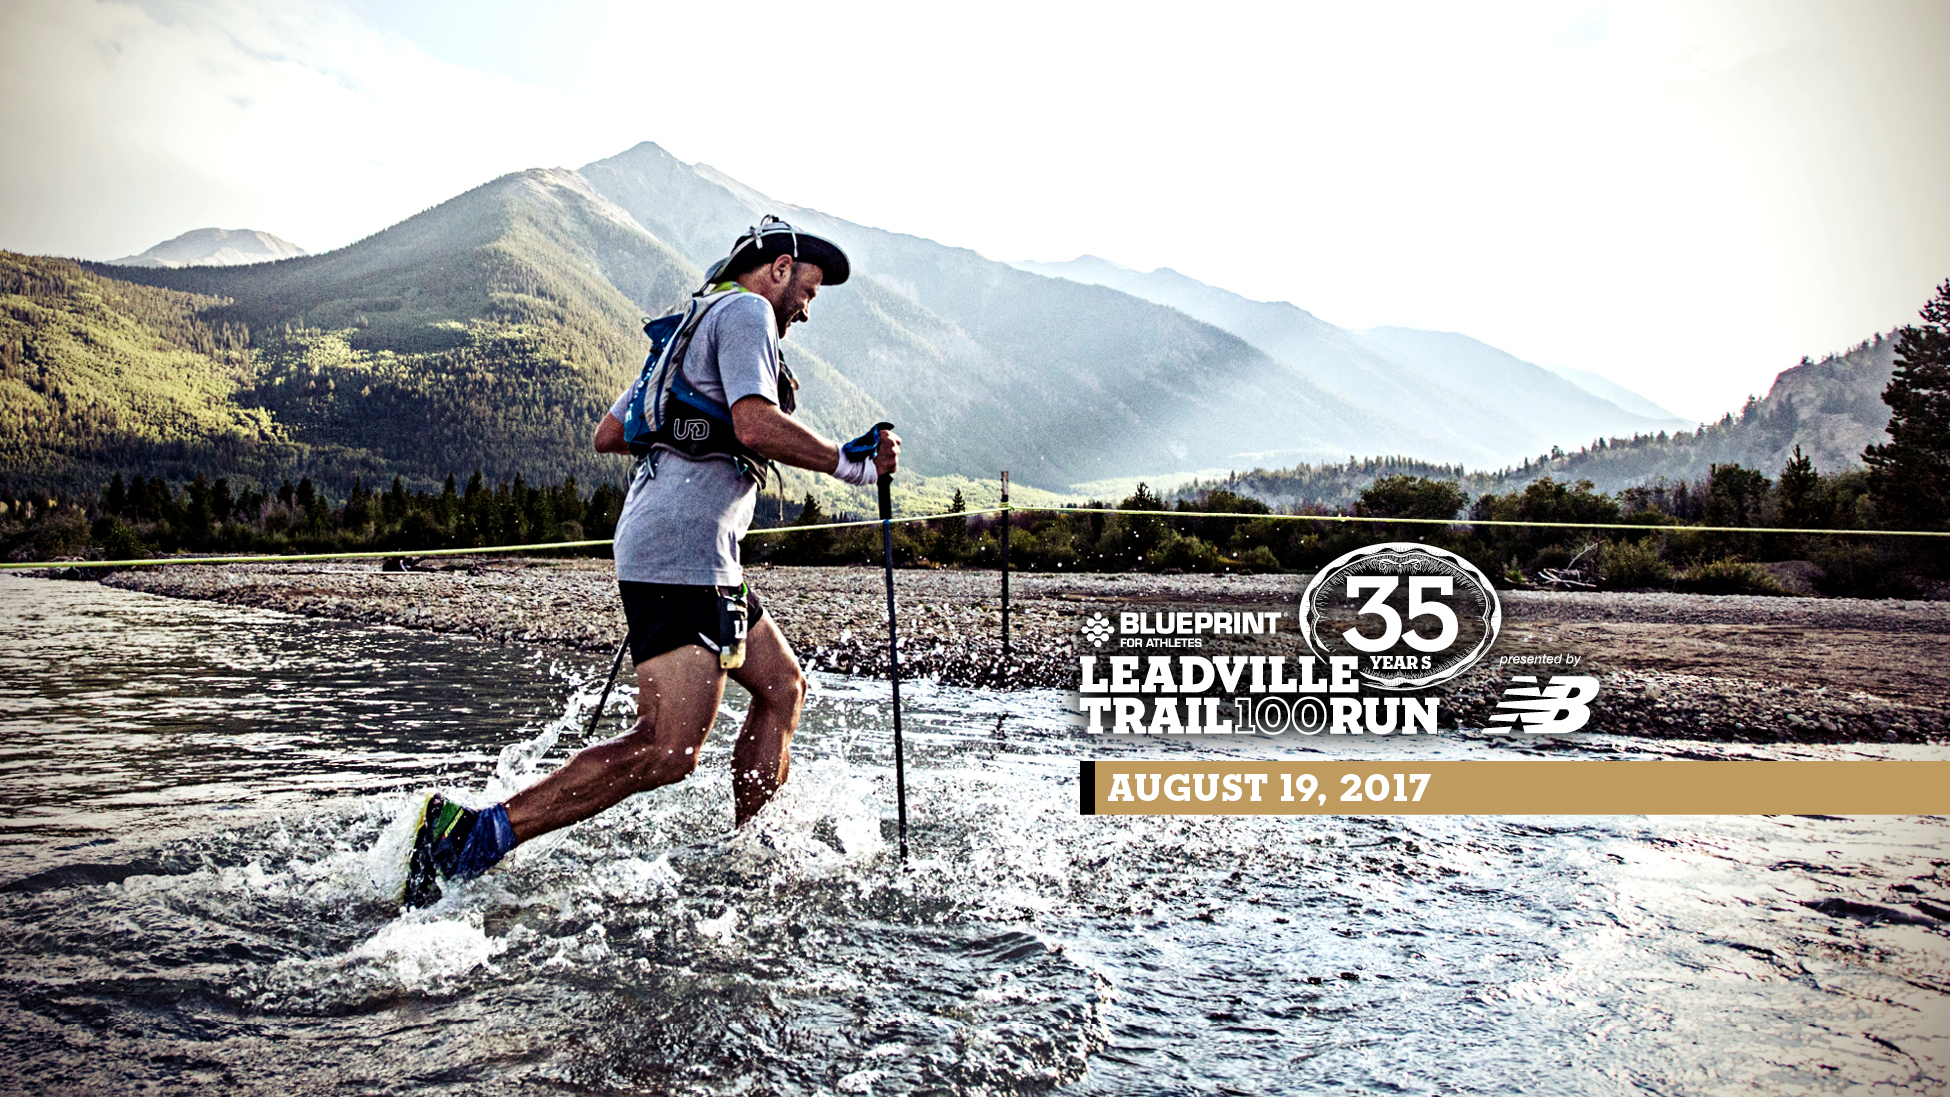 2017 Blueprint For Athletes Leadville Trail 100 Run Athlete Guide